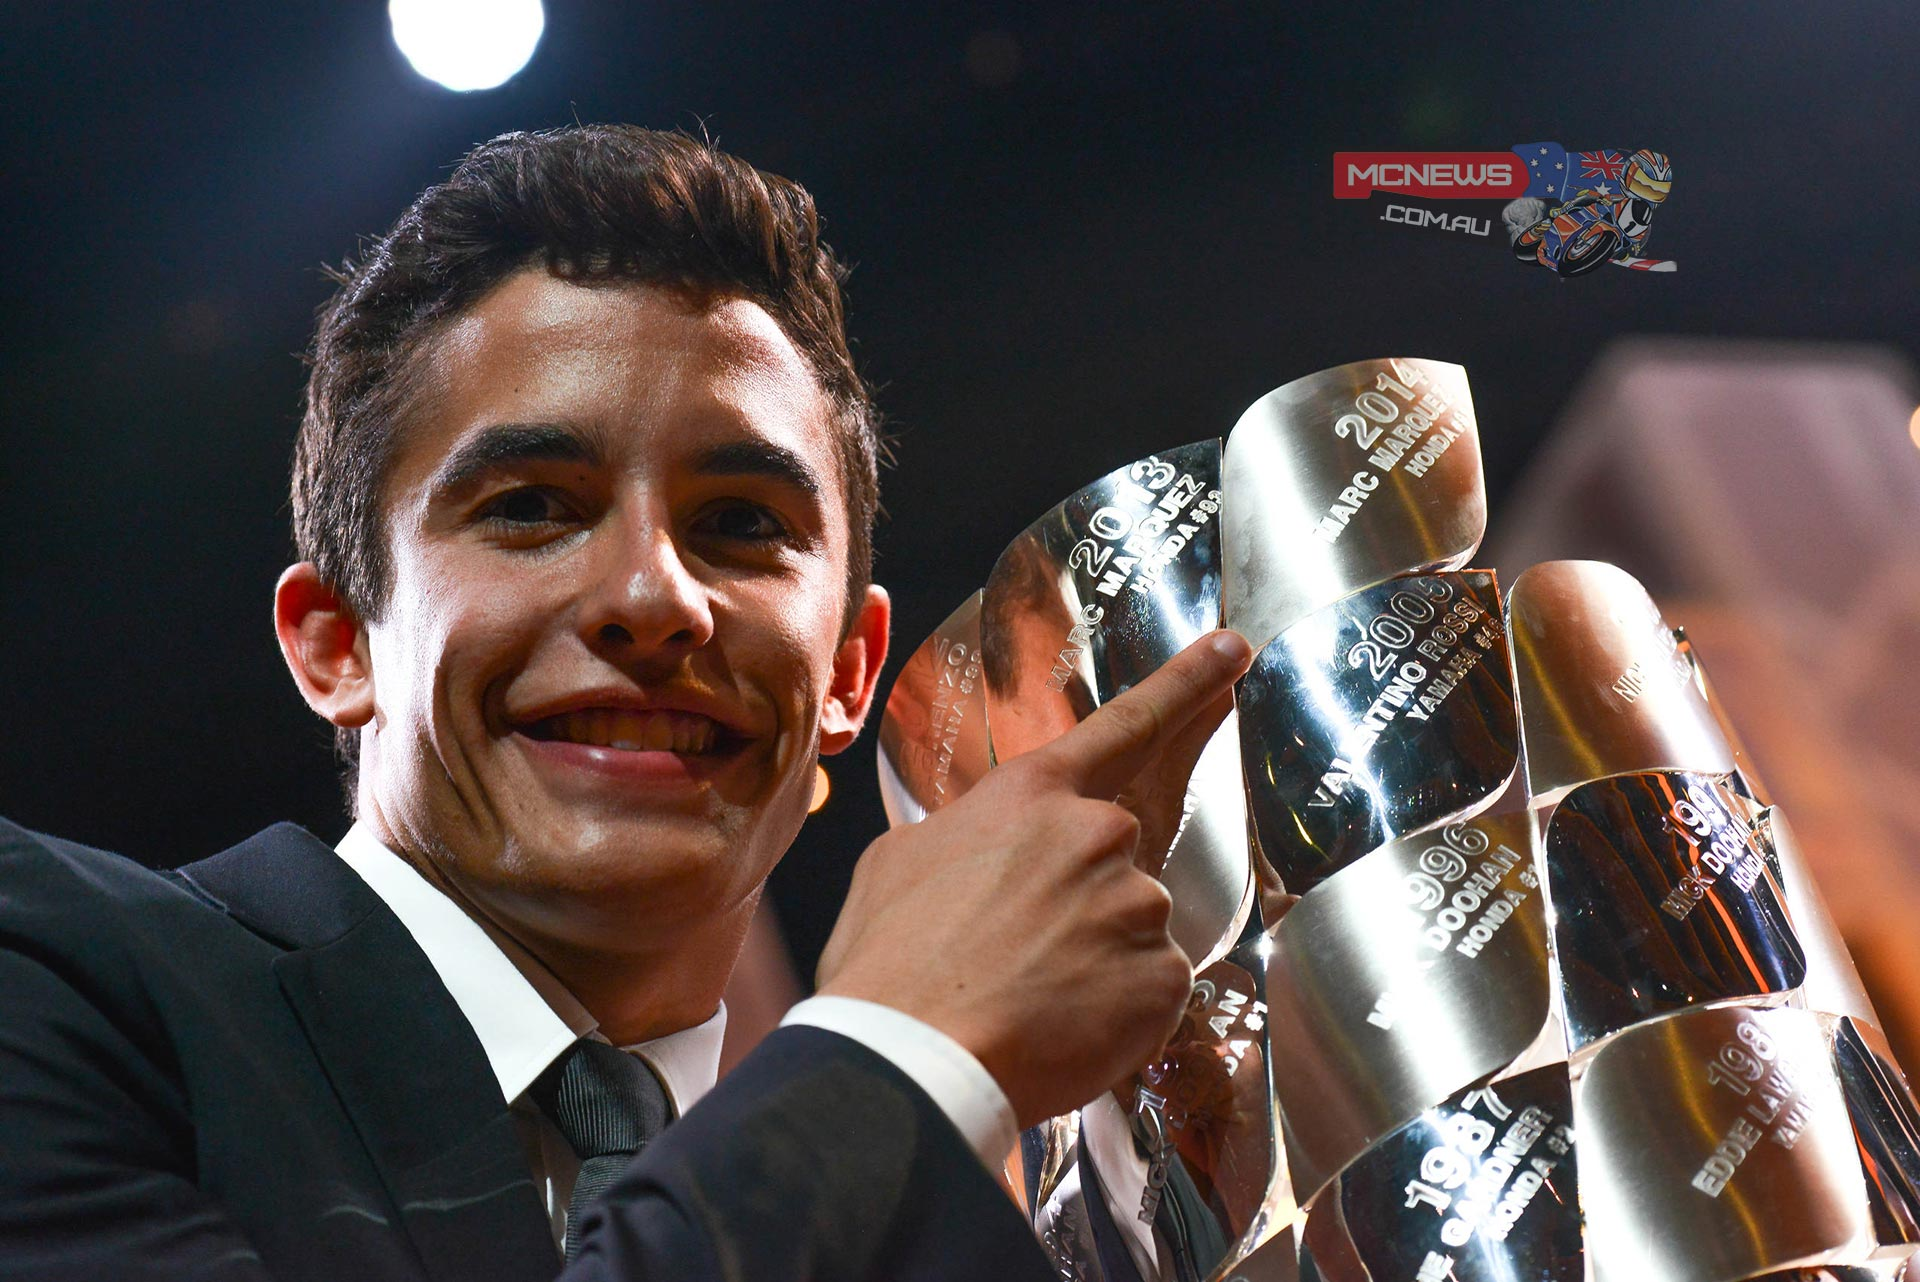 Following Sunday's Gran Premio Generali de la Comunitat Valenciana the 2014 MotoGP™ season was brought to an end at the FIM Awards Ceremony, where among other prize winners, Marc Marquez was presented with the MotoGP World Champion trophy which he retained in style this year.